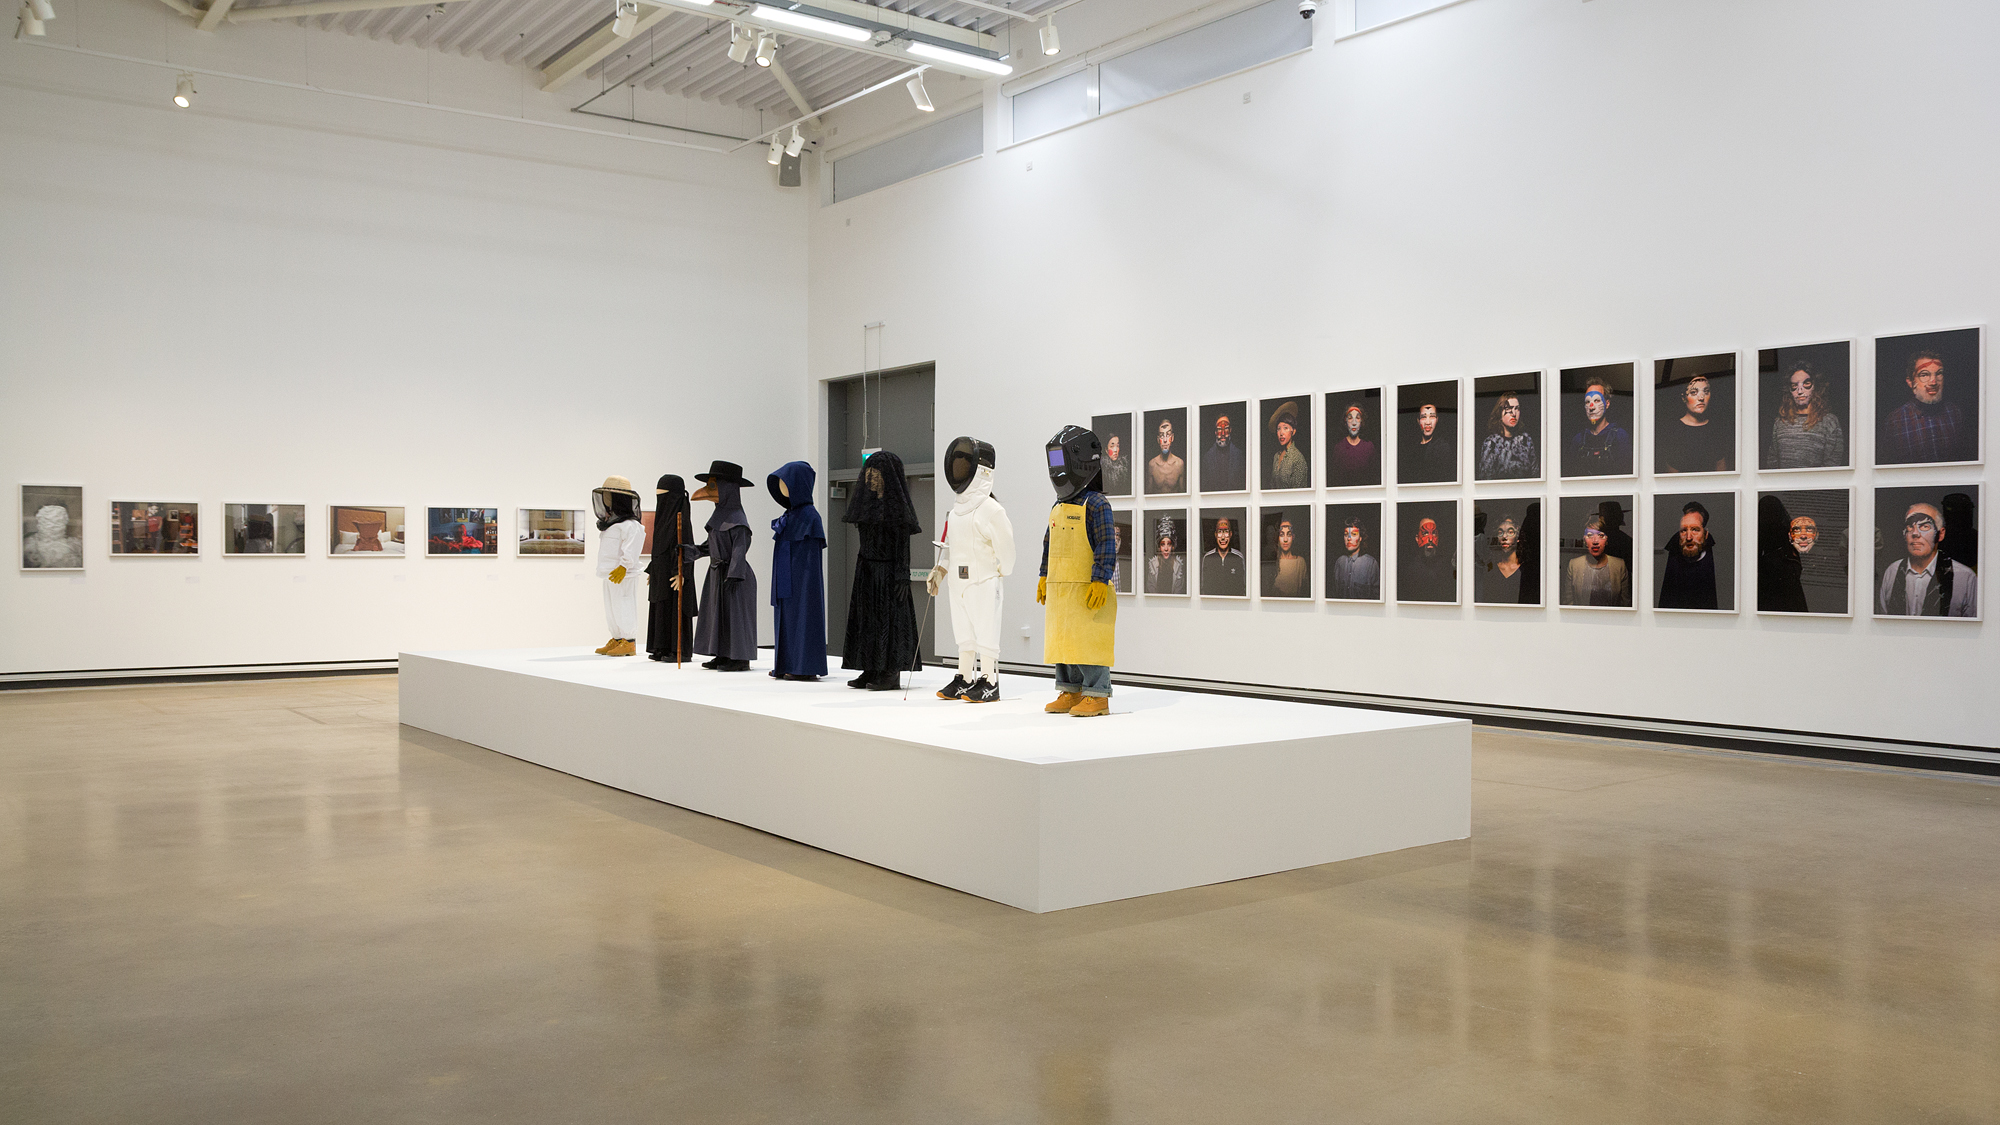 Installation view of Anti-Self-Portraits (2005 - 2008), Uniforms (2015), and Beauty (2017)